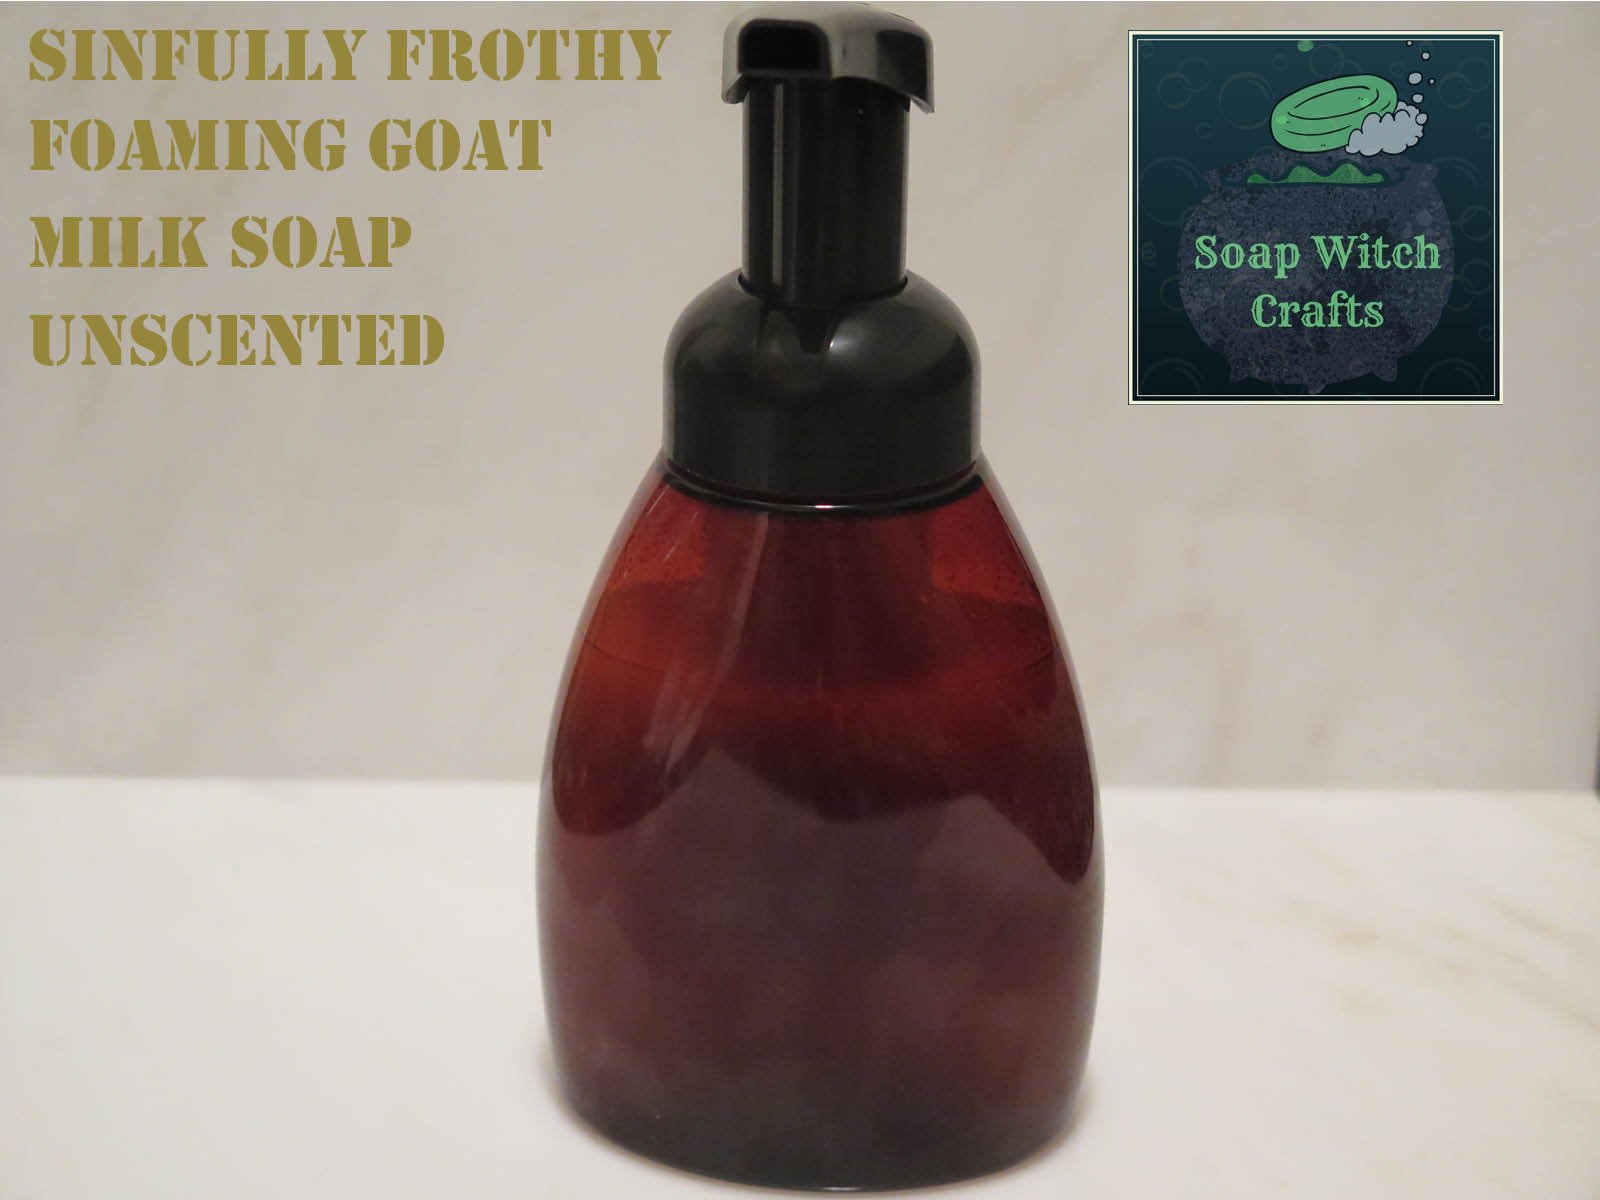 Sinfully Frothy Foaming Goat Milk Soap - Unscented